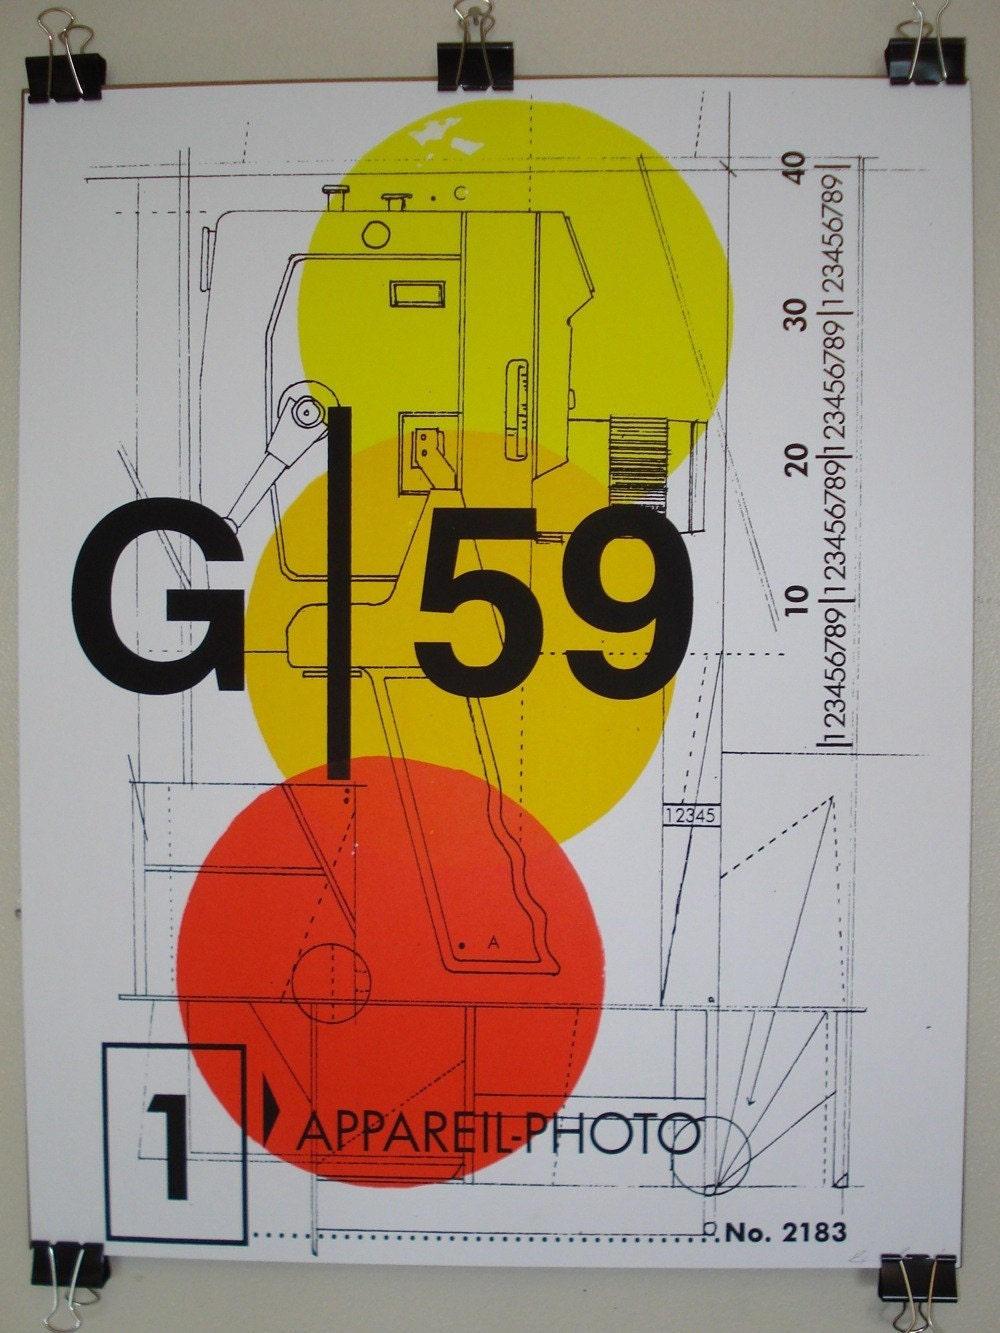 Vintage Bell and Howell Camera DIAGRAM Screen Print ART poster - 16 x 20 inches - 026